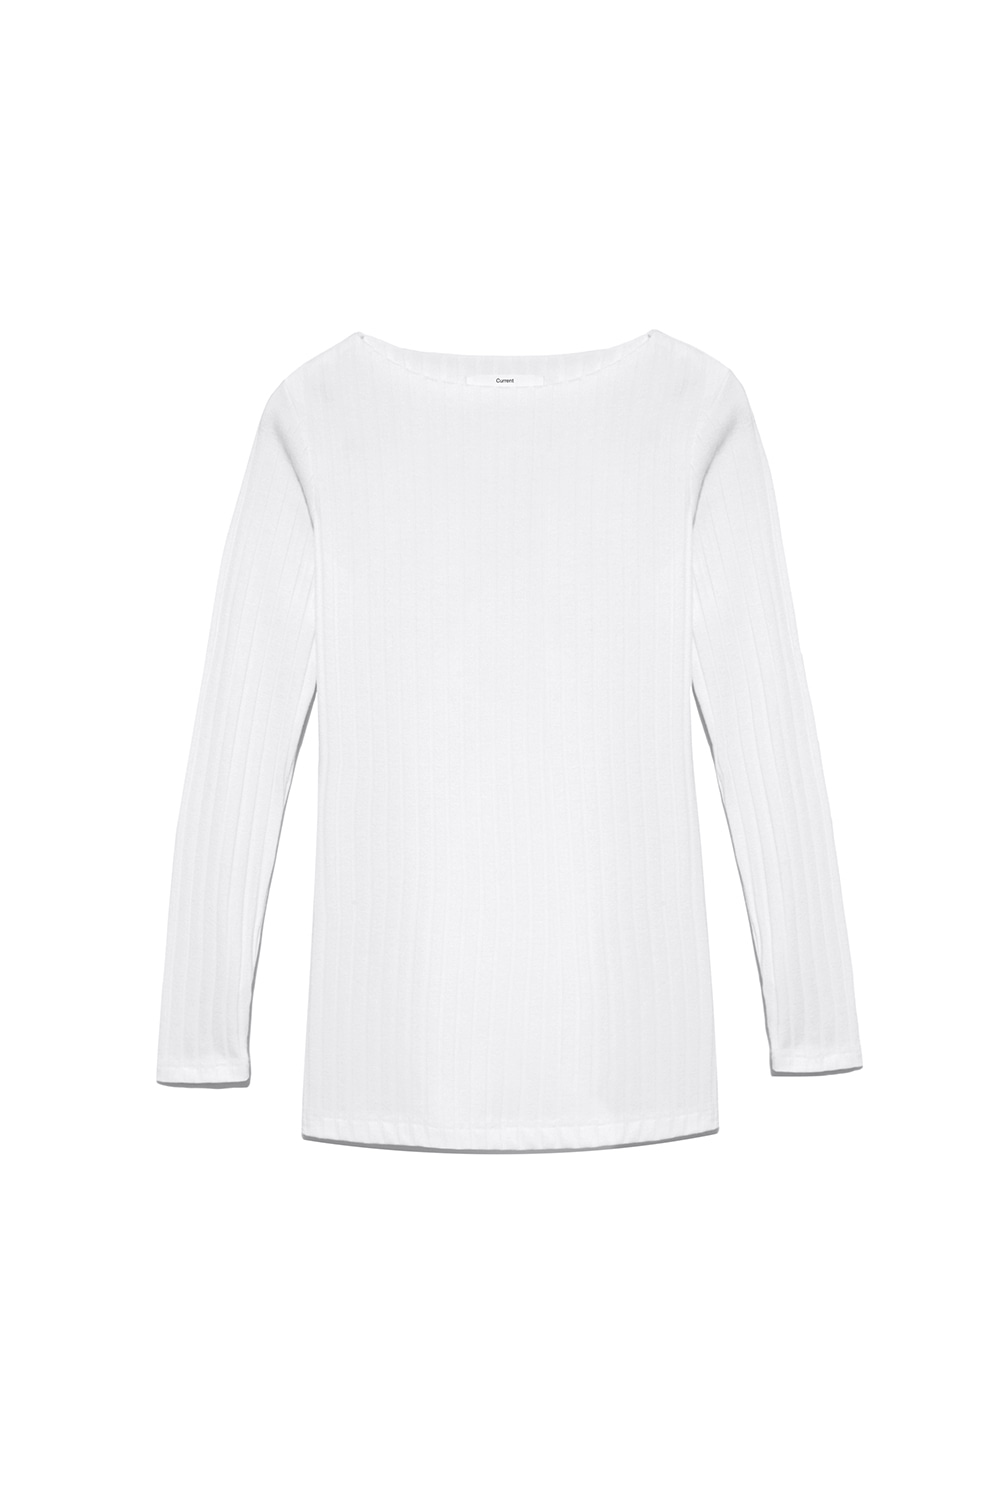 Slit Long Sleeve Tee Women [White]